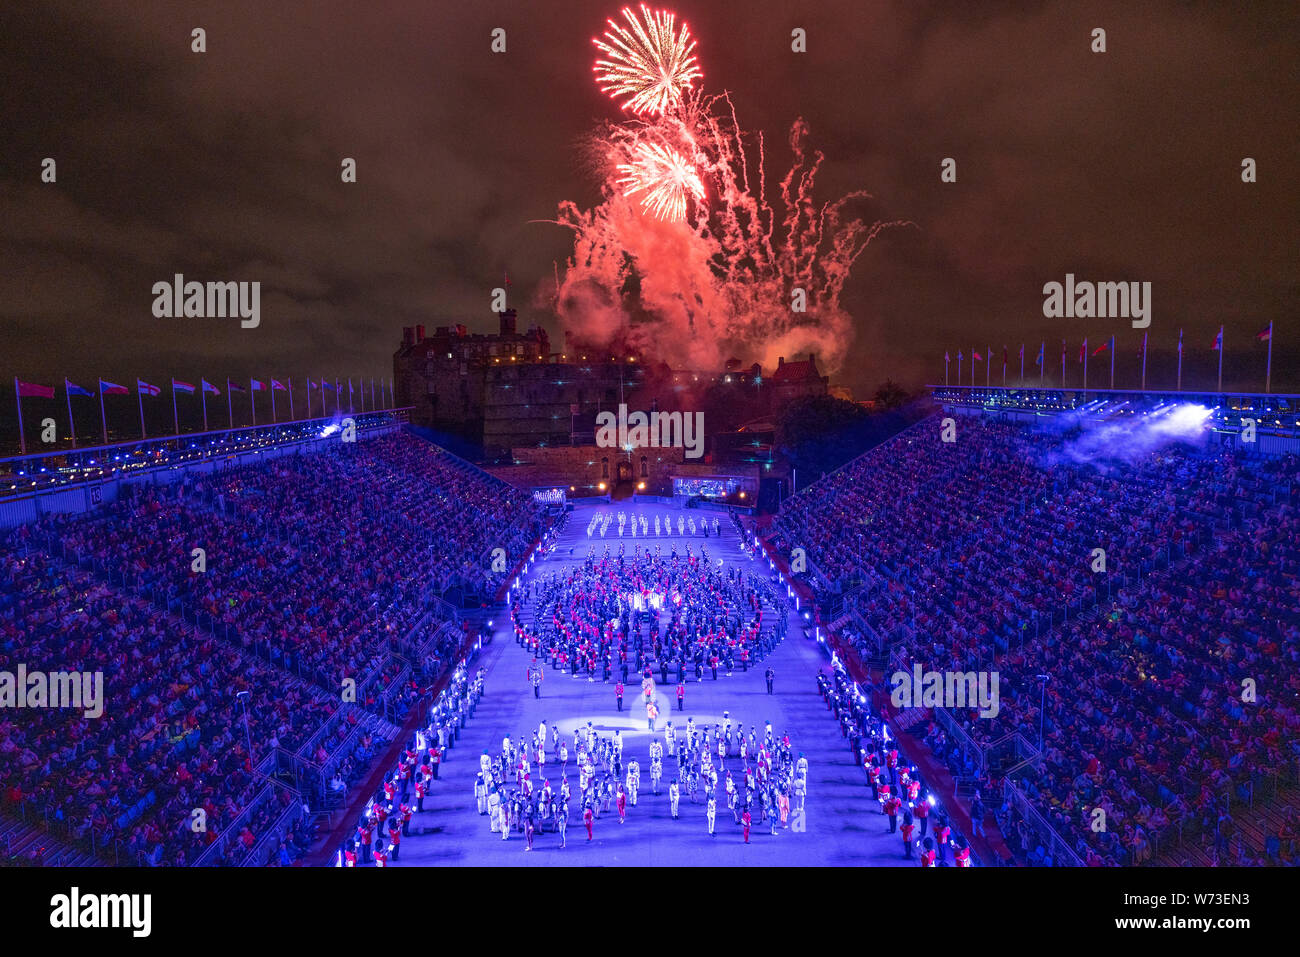 Preview opening night of the 2019 Royal Edinburgh Military Tattoo, performed on the esplanade at Edinburgh Castle, Scotland, UK Stock Photo